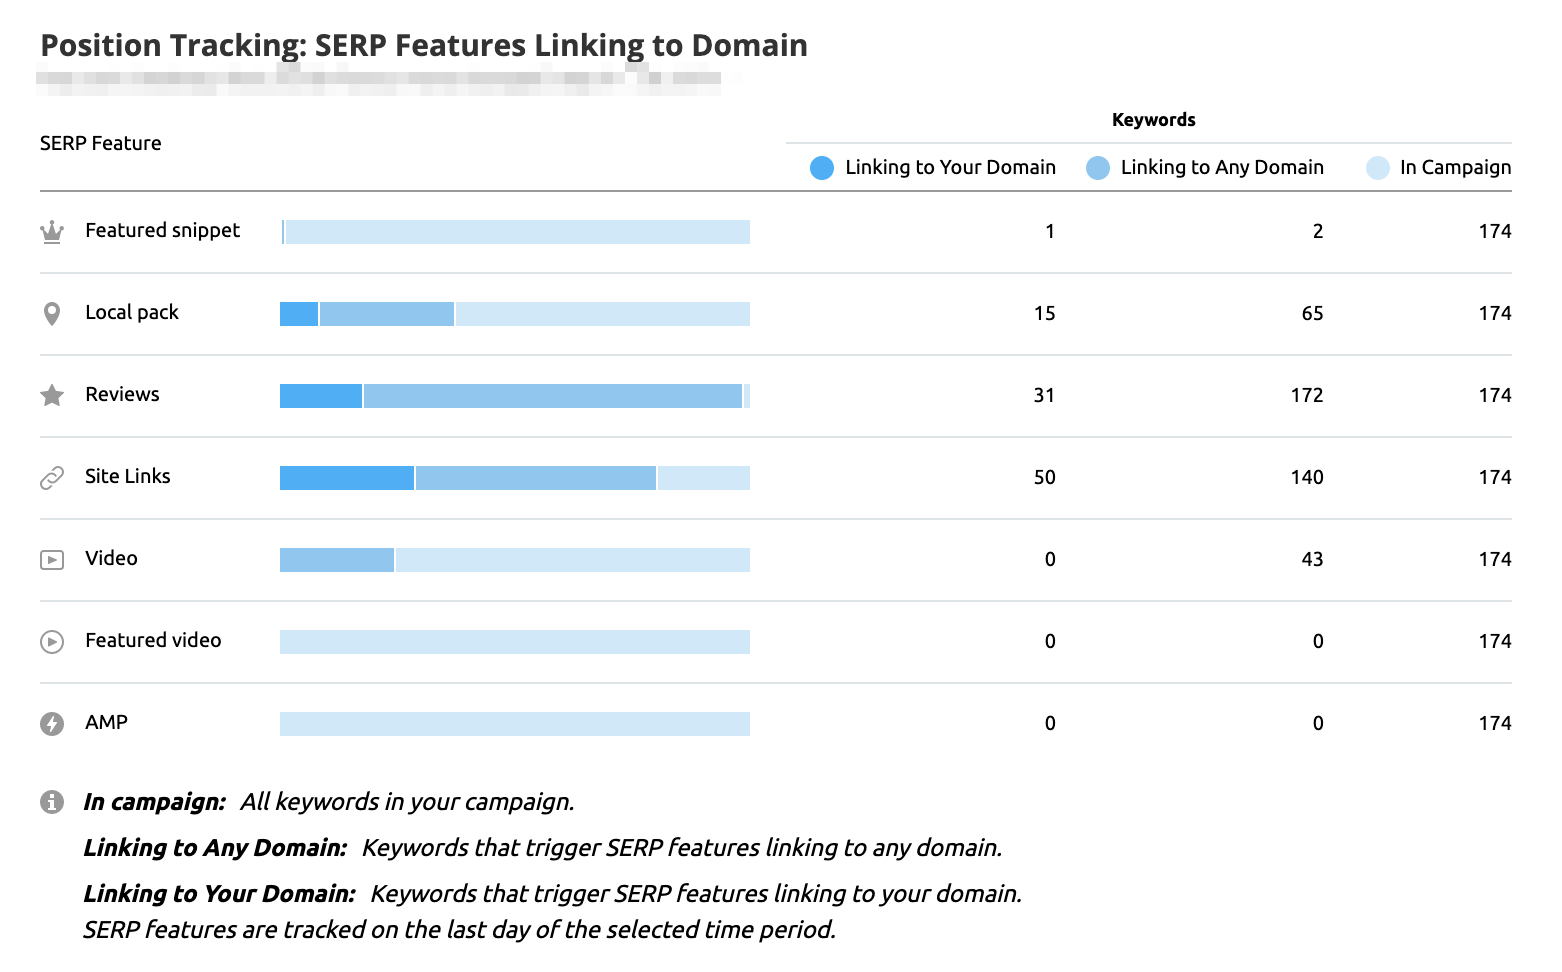 SEMrush Position Tracking SERP features Linking to Domain widget in My reports